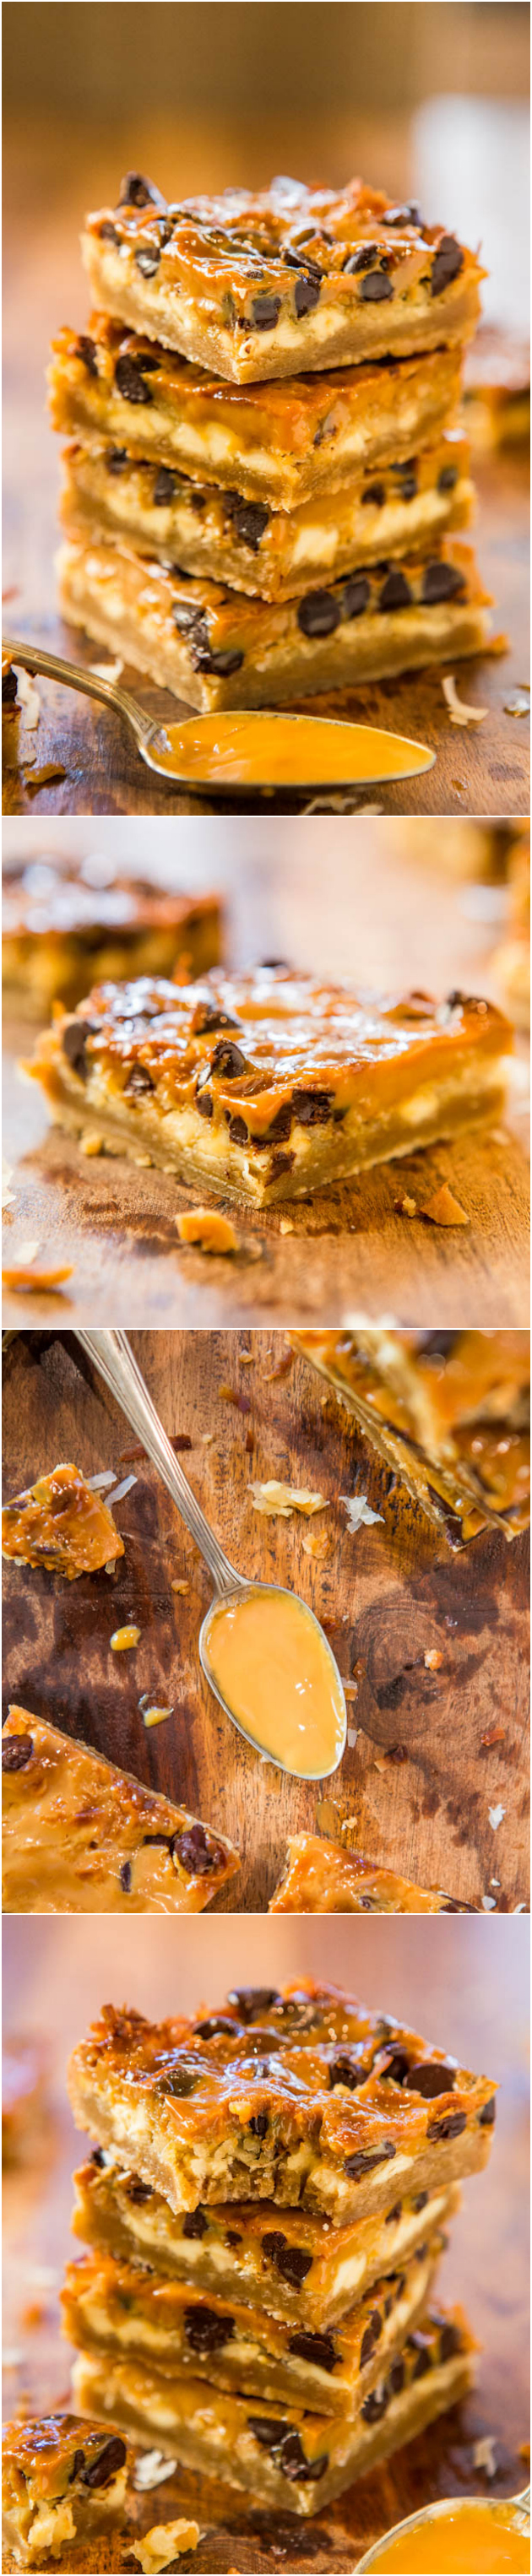 Dulce de Leche Coconut Chocolate Chip Bars - Chocolate, white chocolate & coconut flooded with dulce de leche! Like 7-Layer Bars, with sweet, creamy, caramely dulce de leche instead! Easy one-bowl recipe at averiecooks.com